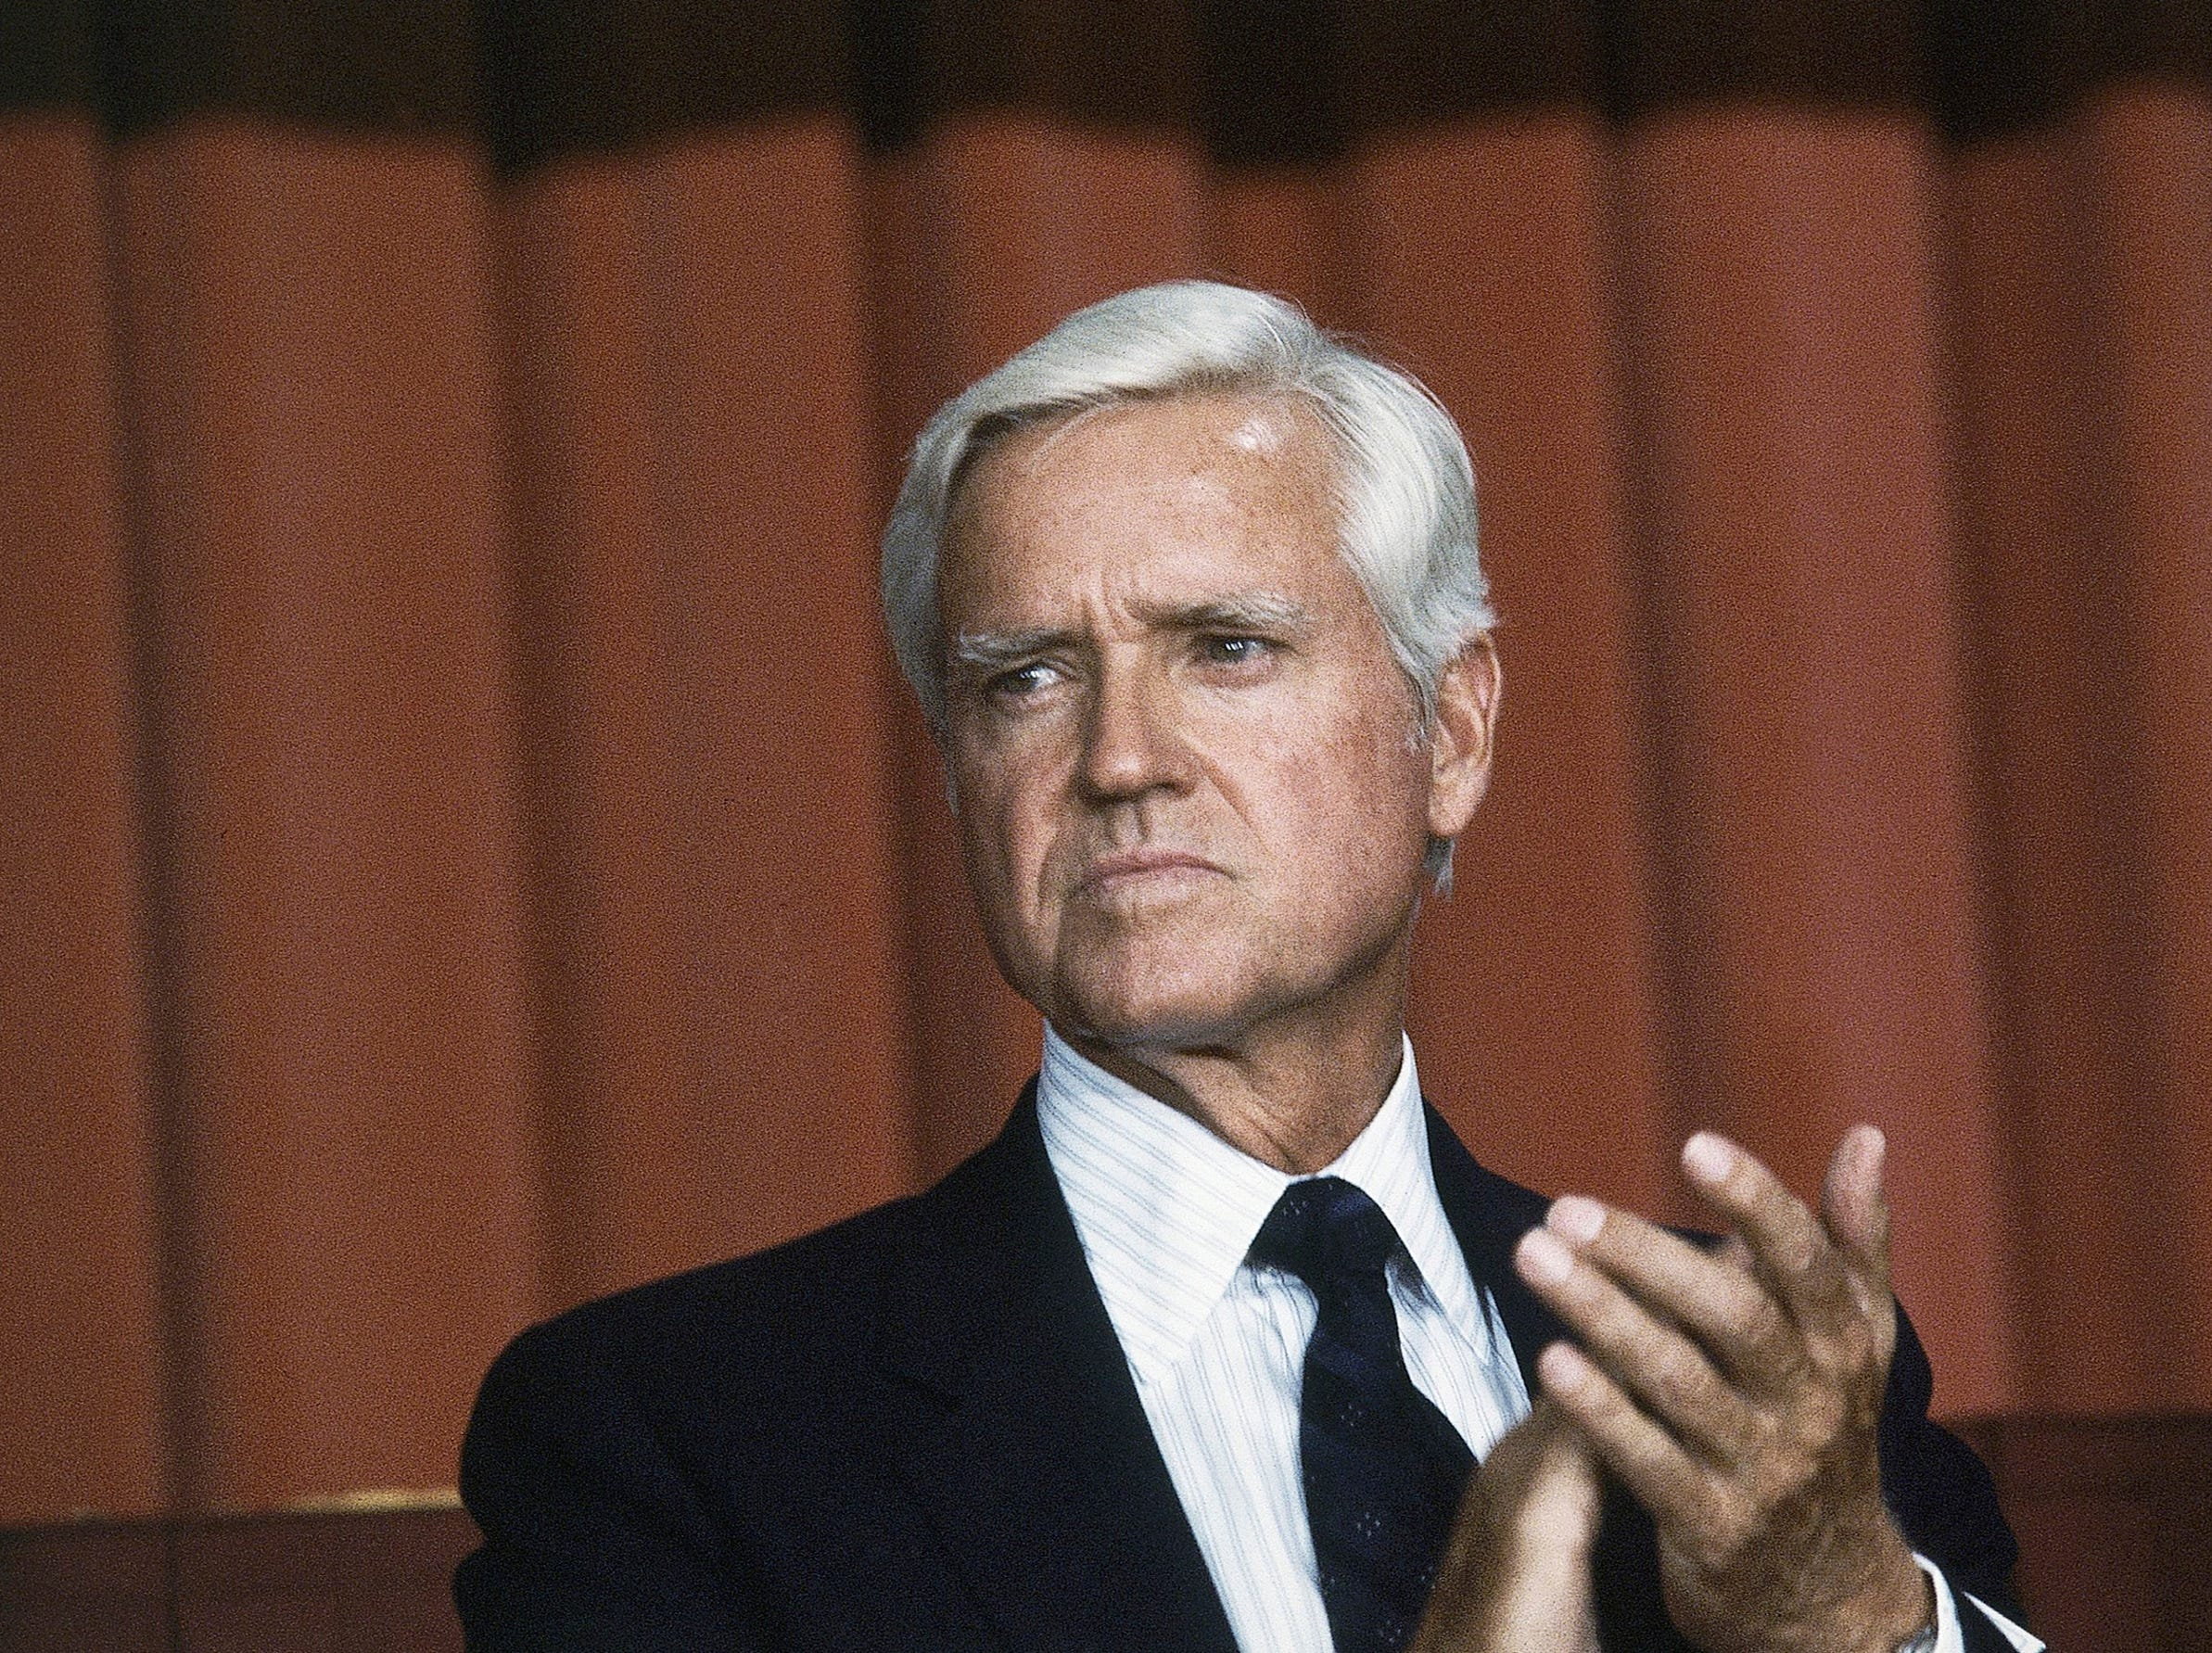 This July 20, 1983 file photo shows Senator Ernest F. Hollings (D-S.C.) in Washington, D. C. Hollings, a moderate six-term Democrat who made an unsuccessful bid for the presidency in 1984, has died. He was 97. Family spokesman Andy Brack says Hollings died early Saturday, April 6, 2019.